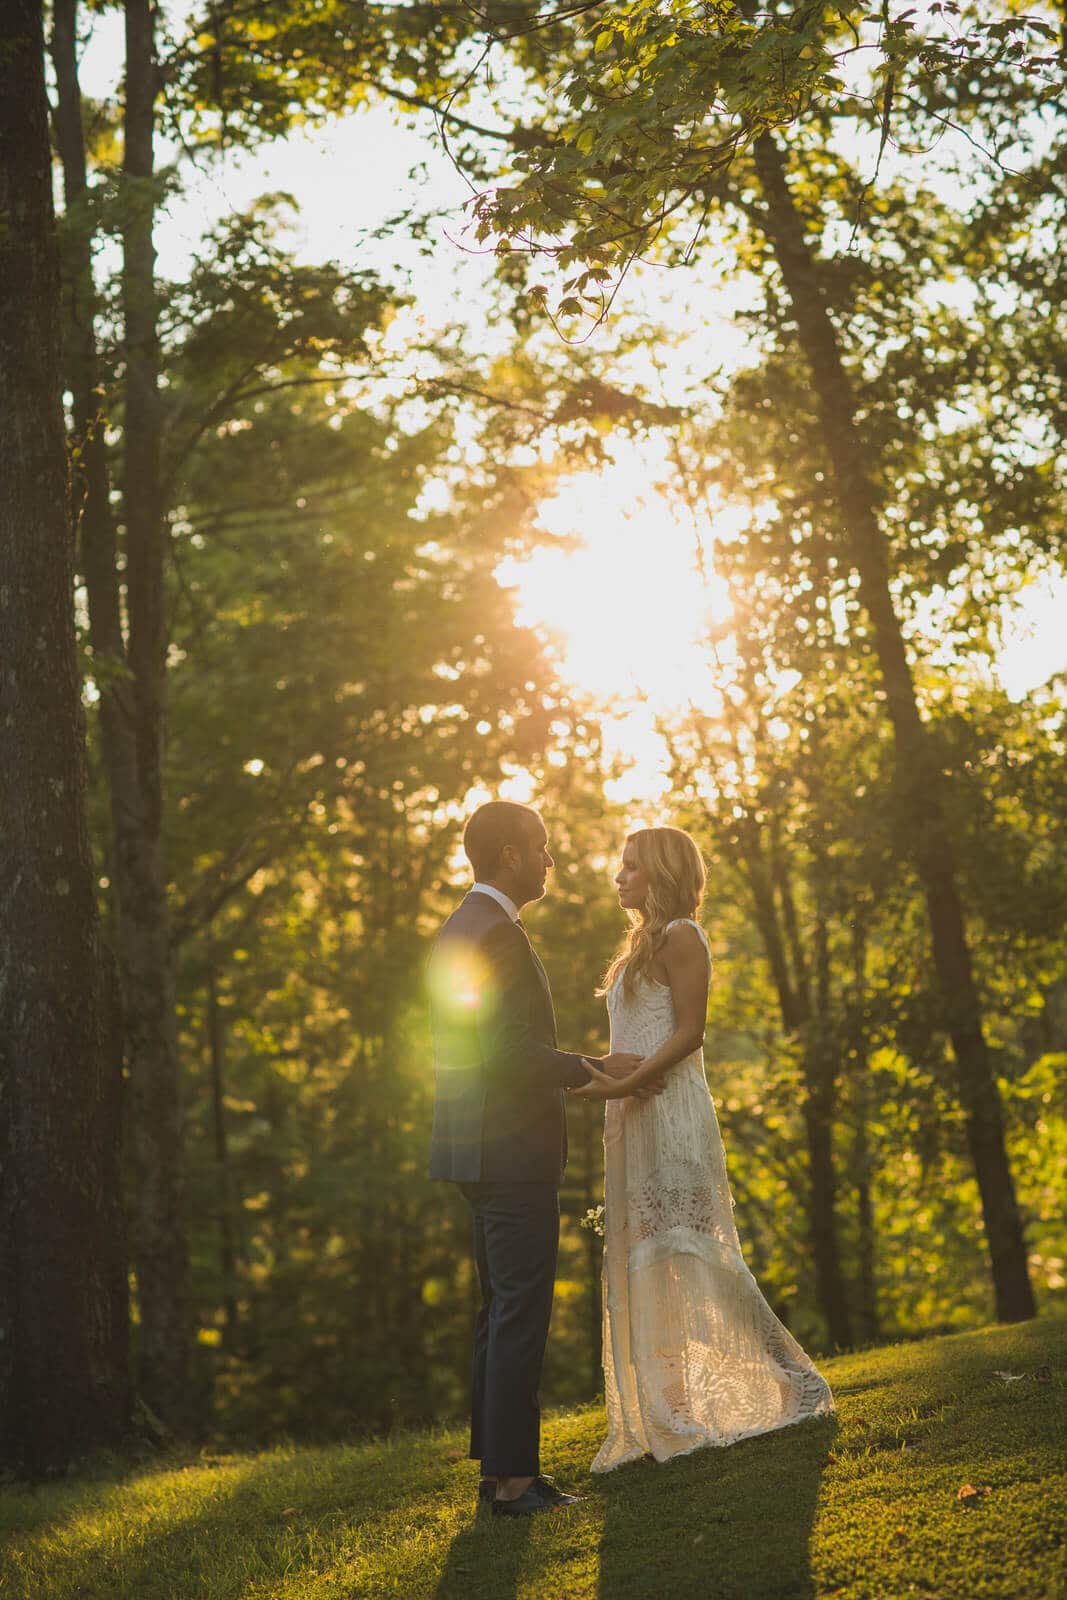 outdoor wedding, boho, stylish, modern, estate wedding, vintage, tux